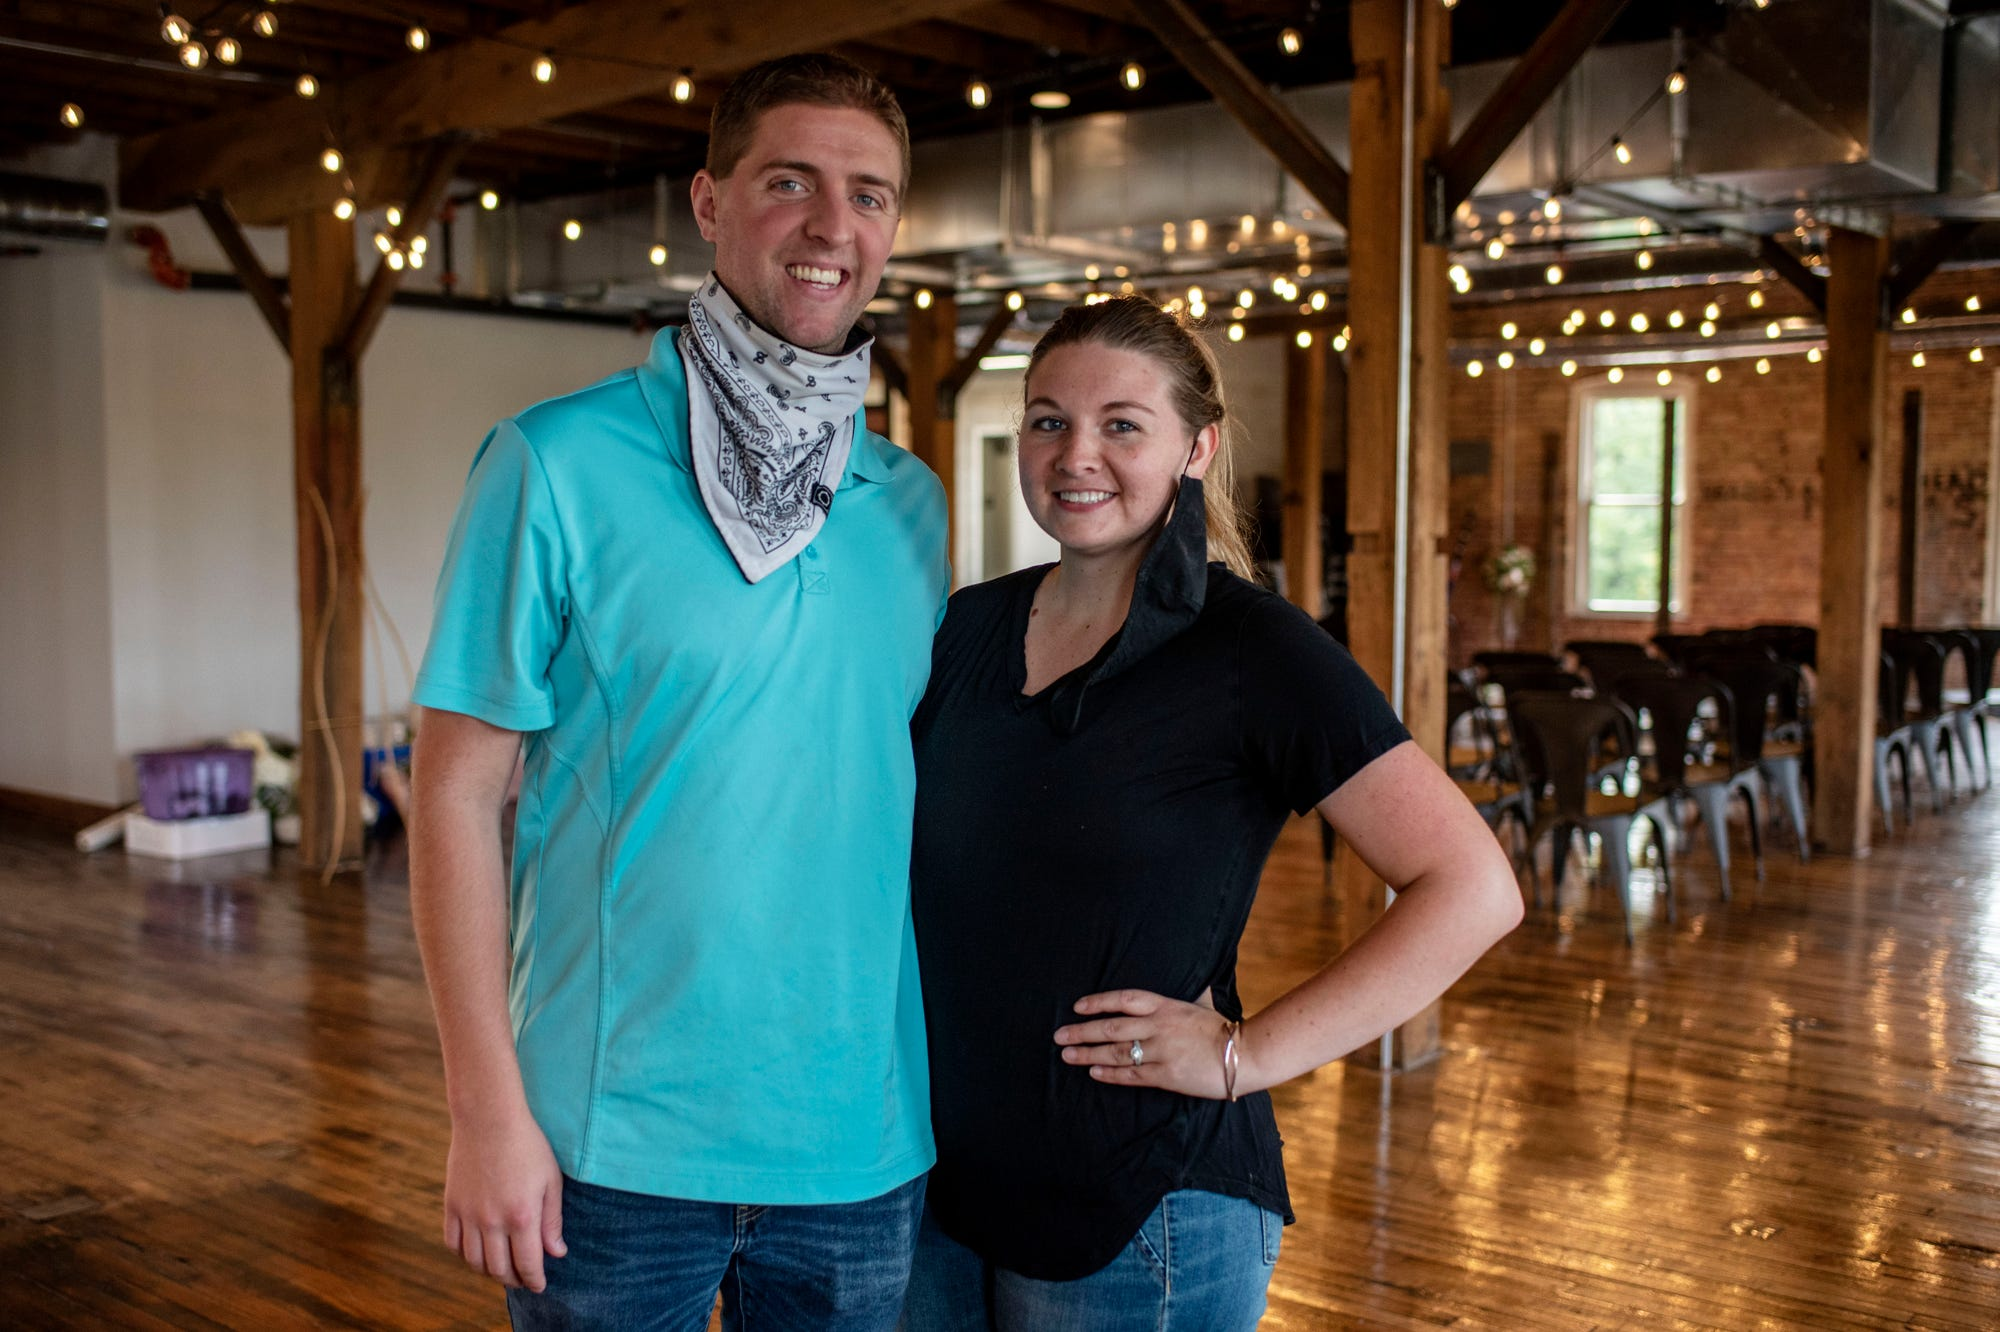 Cody and Caitlynn Newman, owners of Restore 269 and The Record Box, pose for a portrait on Tuesday, Sept. 15, 2020 at Record Box Loft in Battle Creek, Mich. Sprout is partnering with Restore 269 to open a downtown market and deli in Battle Creek.